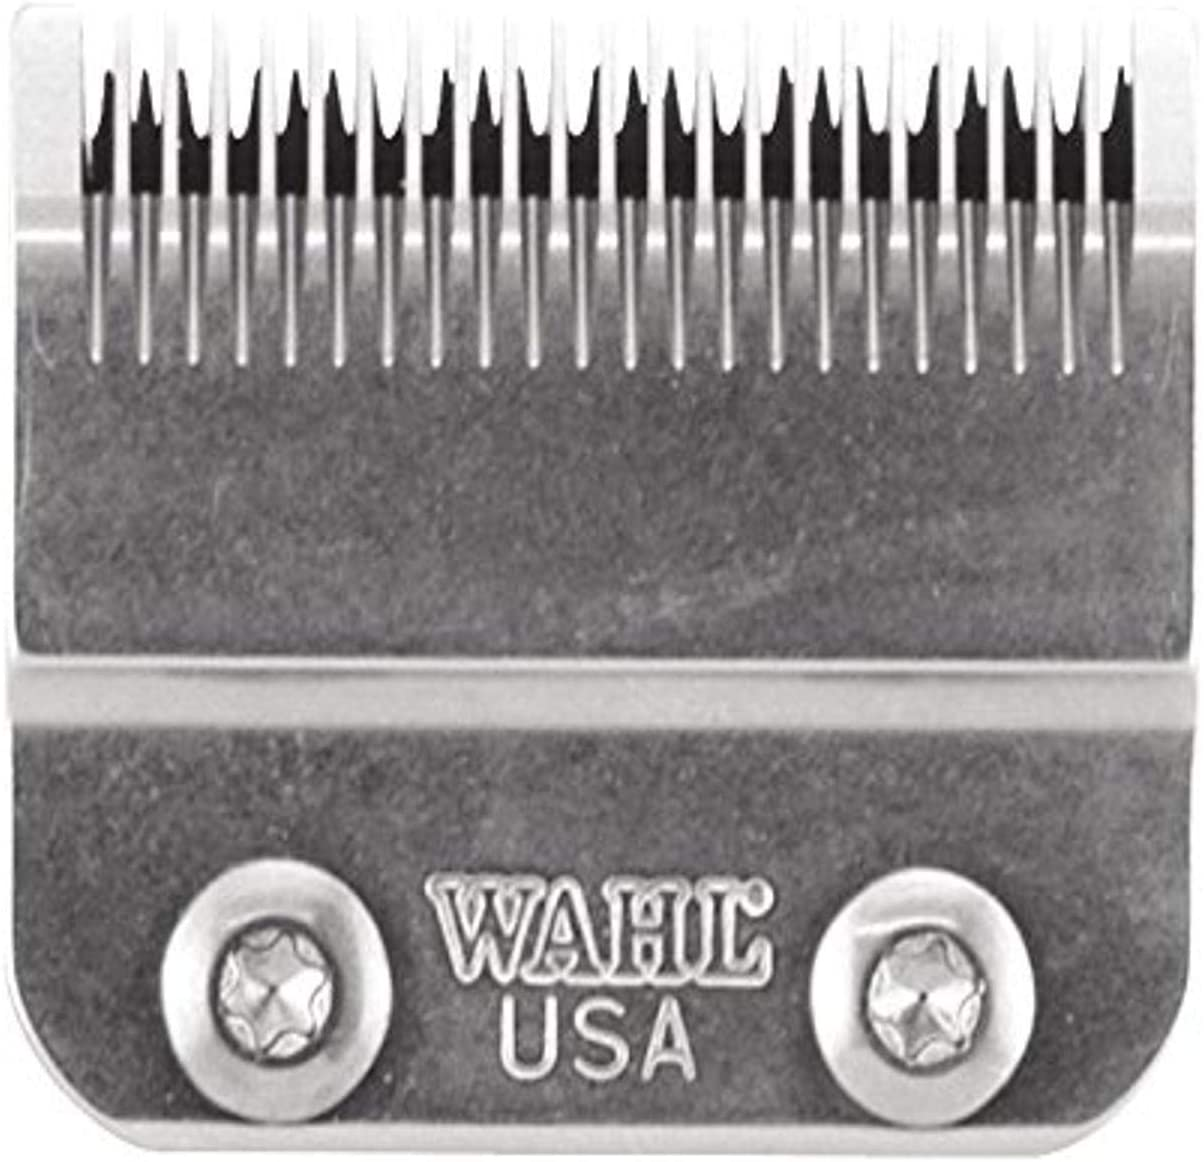 Pet Grooming Clipper Blades : Wahl Professional Animal #10 Medium Precision Blade with 1/16-Inch Cut Length (#2097-800), Silver